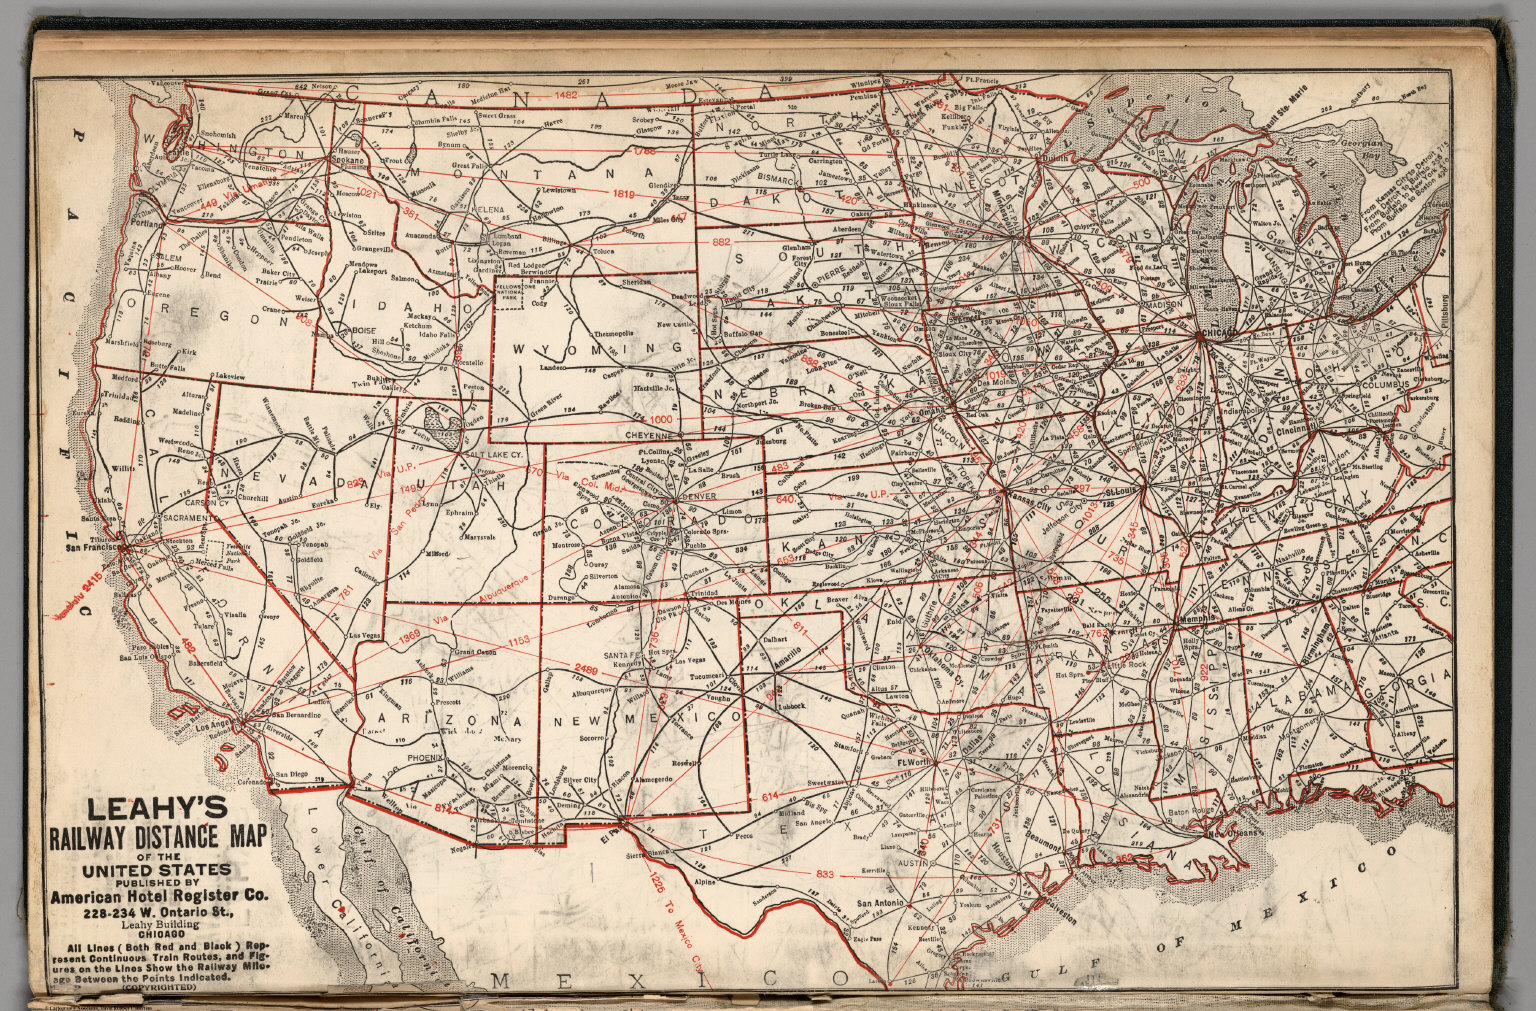 Leahys Railway Distance Map of the United States David Rumsey